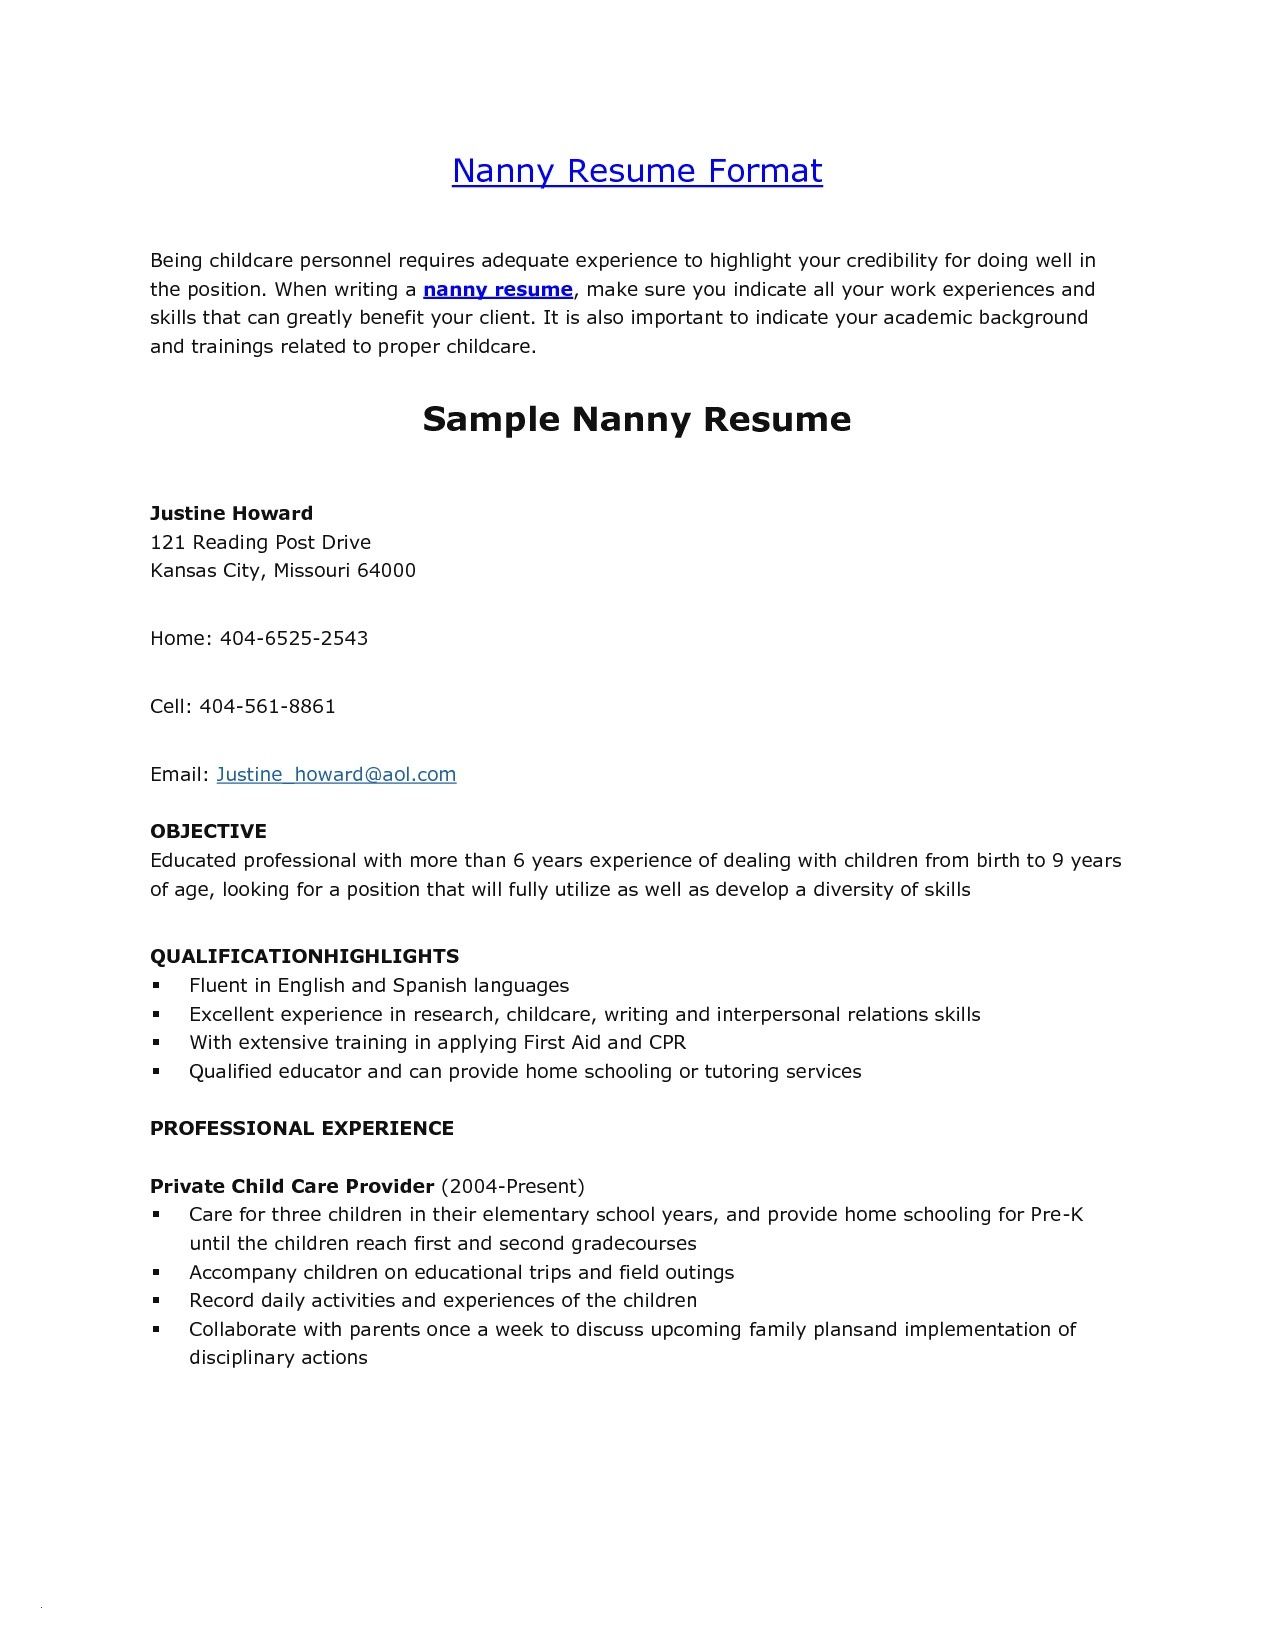 Caregiver Resume Summary - Caregiver Resume Examples Awesome In Home Caregiver Resume Fresh